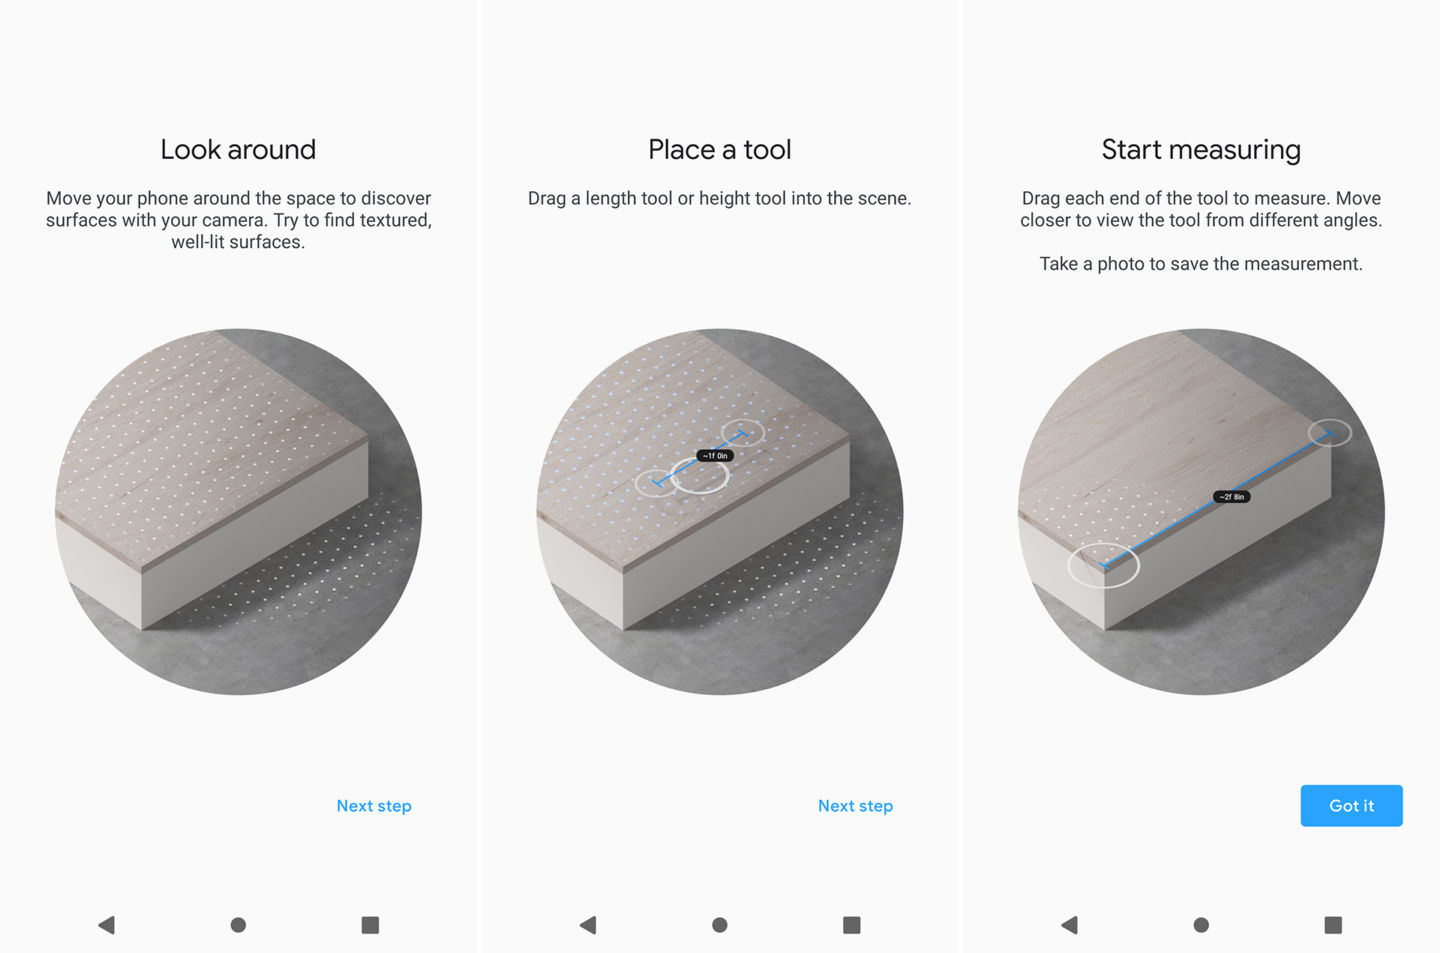 APK] Google Launched Measure App For All ARCore Devices - Kickedface